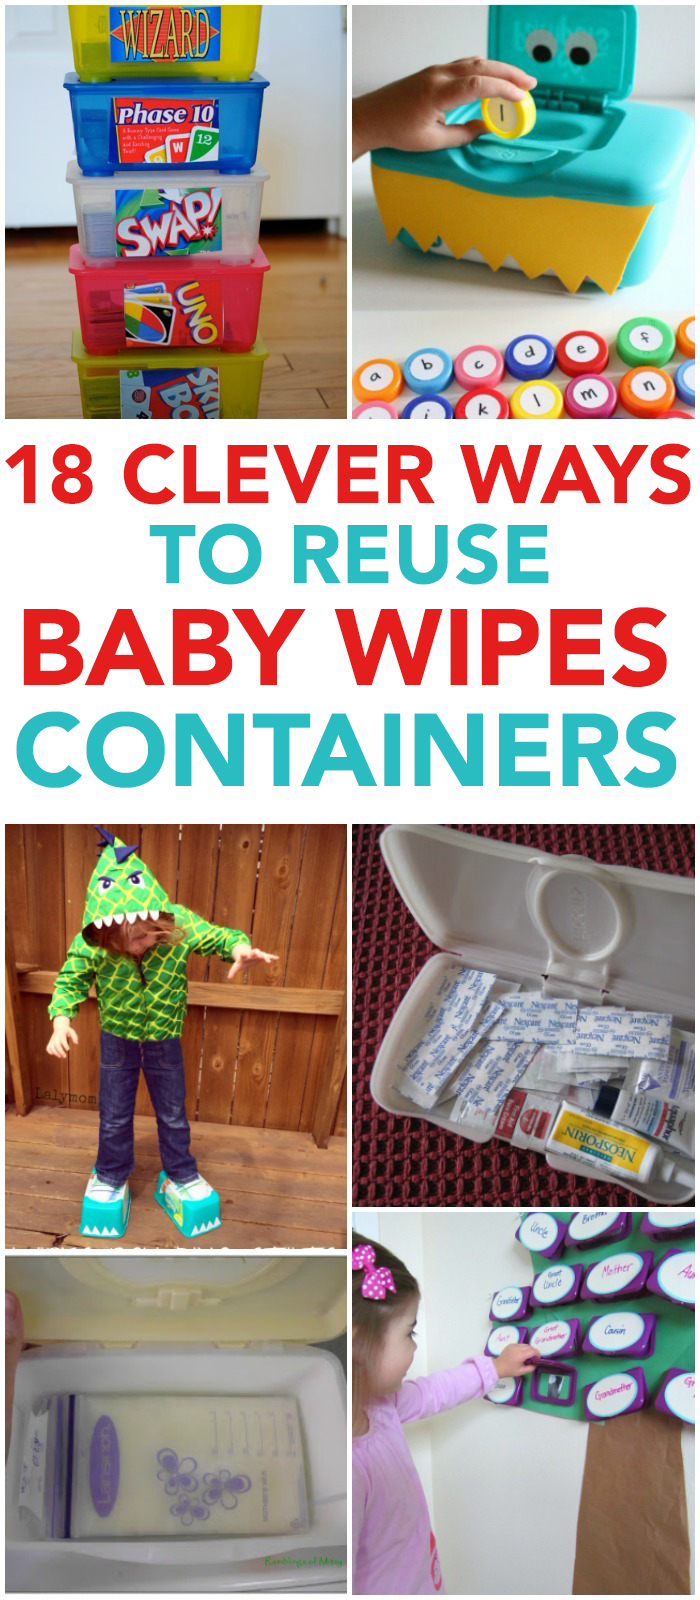 b9b8c568c 18 Clever Baby Wipe Container Hacks